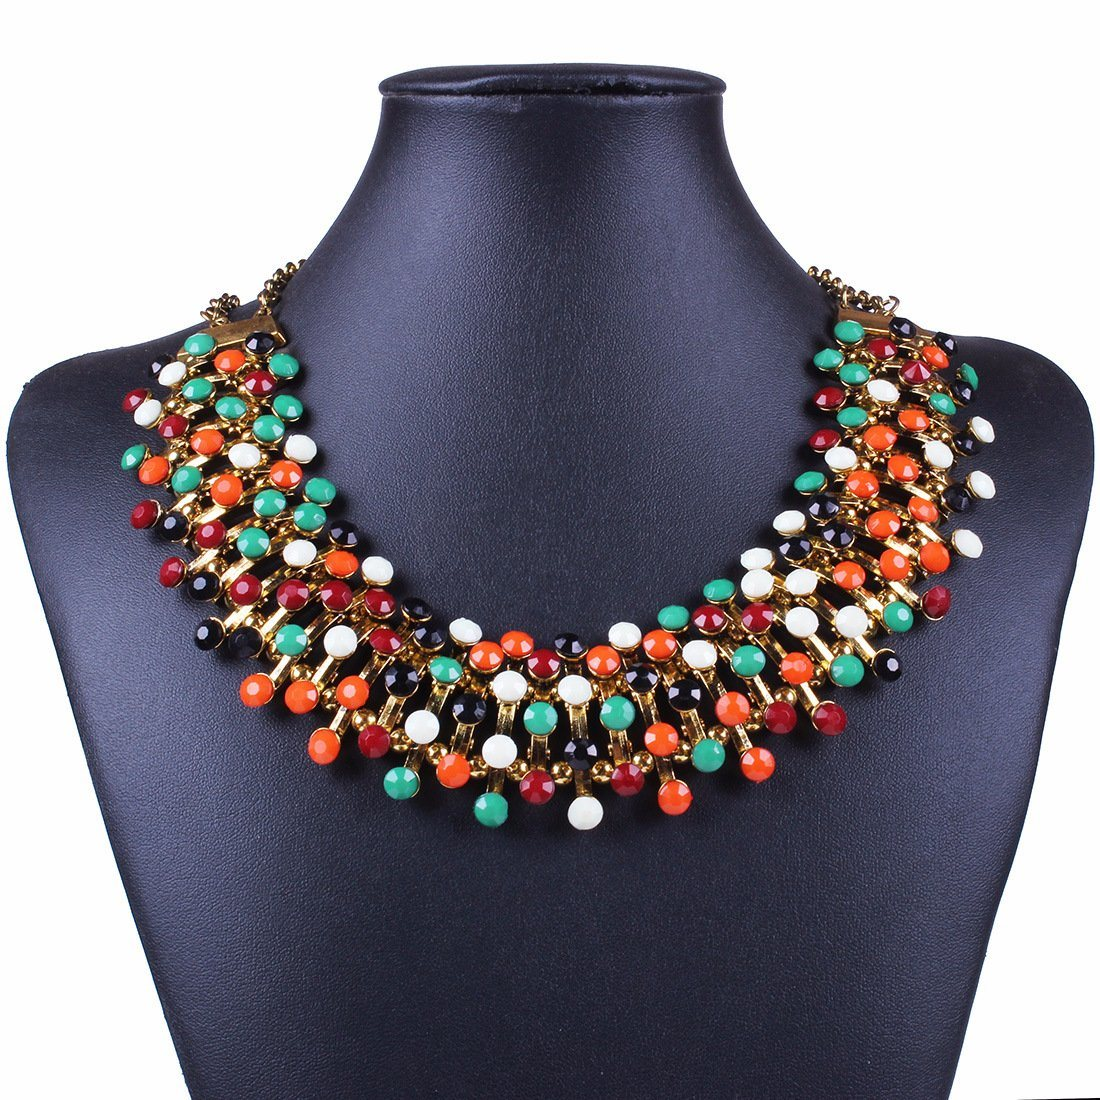 Fashion Designer Colorful Acrylic Statement Choker Necklace Jewelry